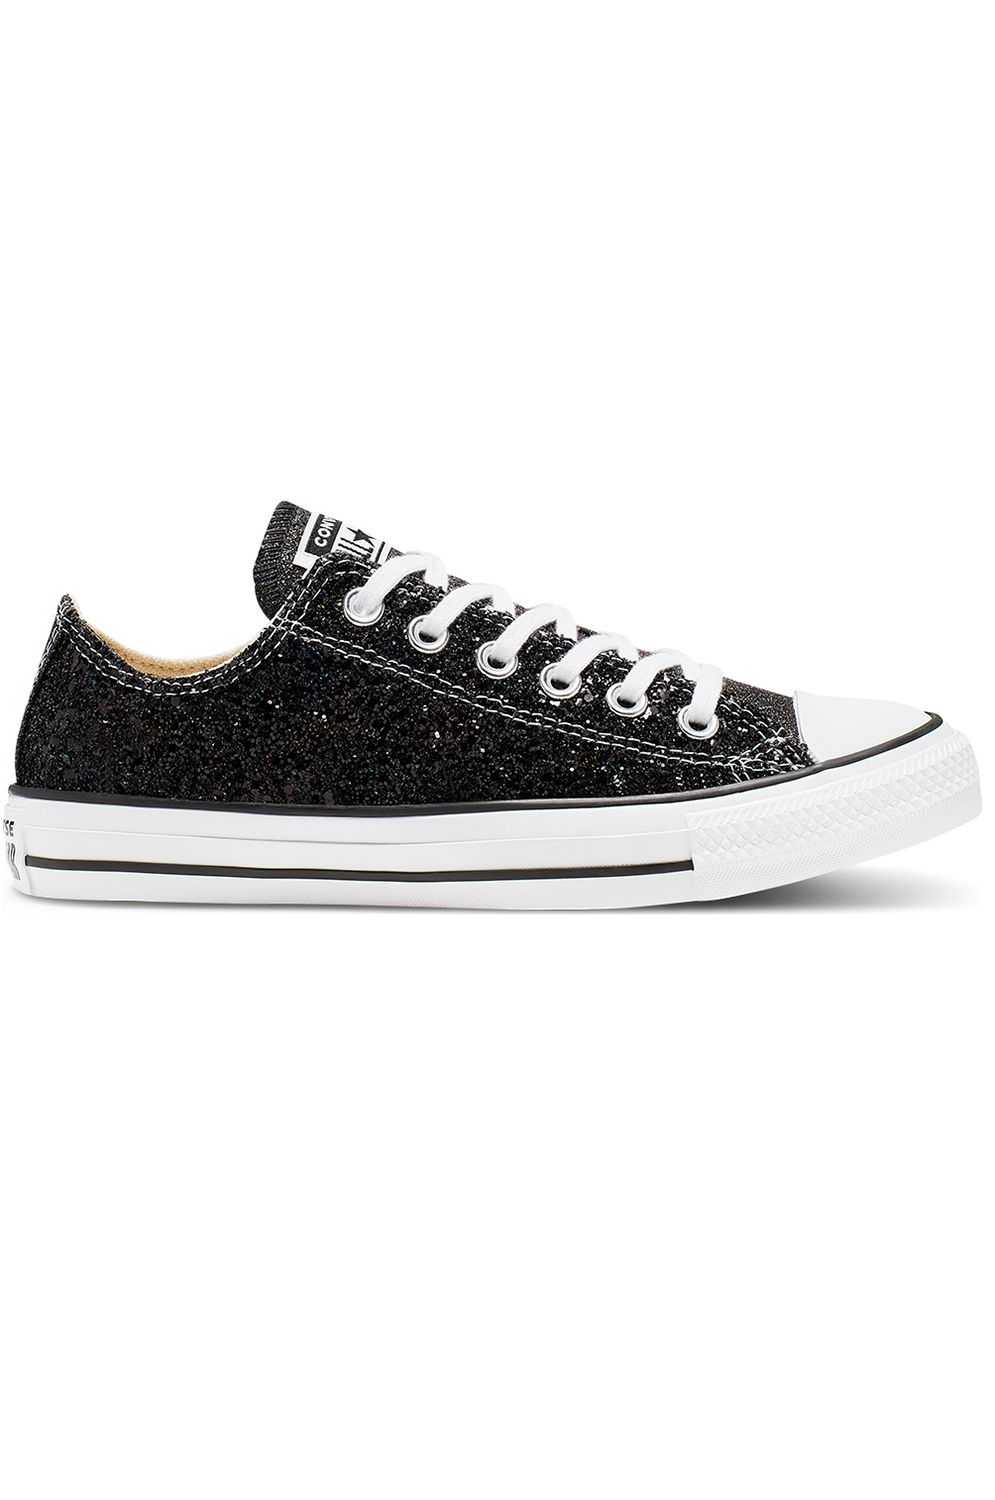 Converse Shoes CHUCK TAYLOR ALL STAR - OX Black/Silver/White